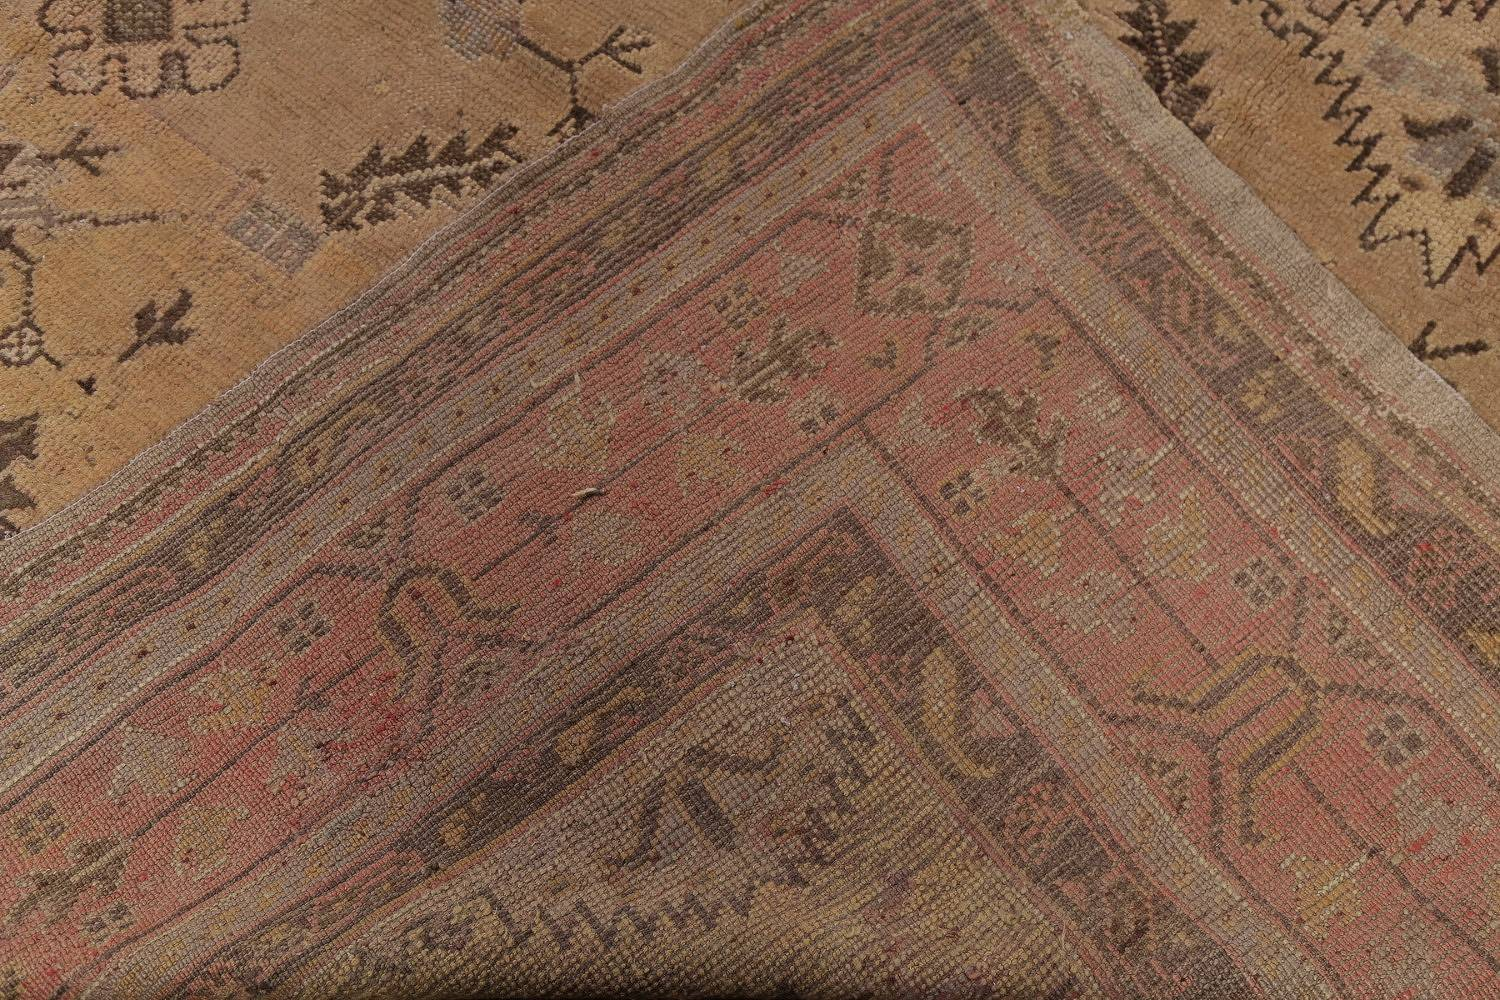 Pre-1900 Antique All-Over Geometric Muted Color Oushak Turkish Area Rug 10x13 image 24